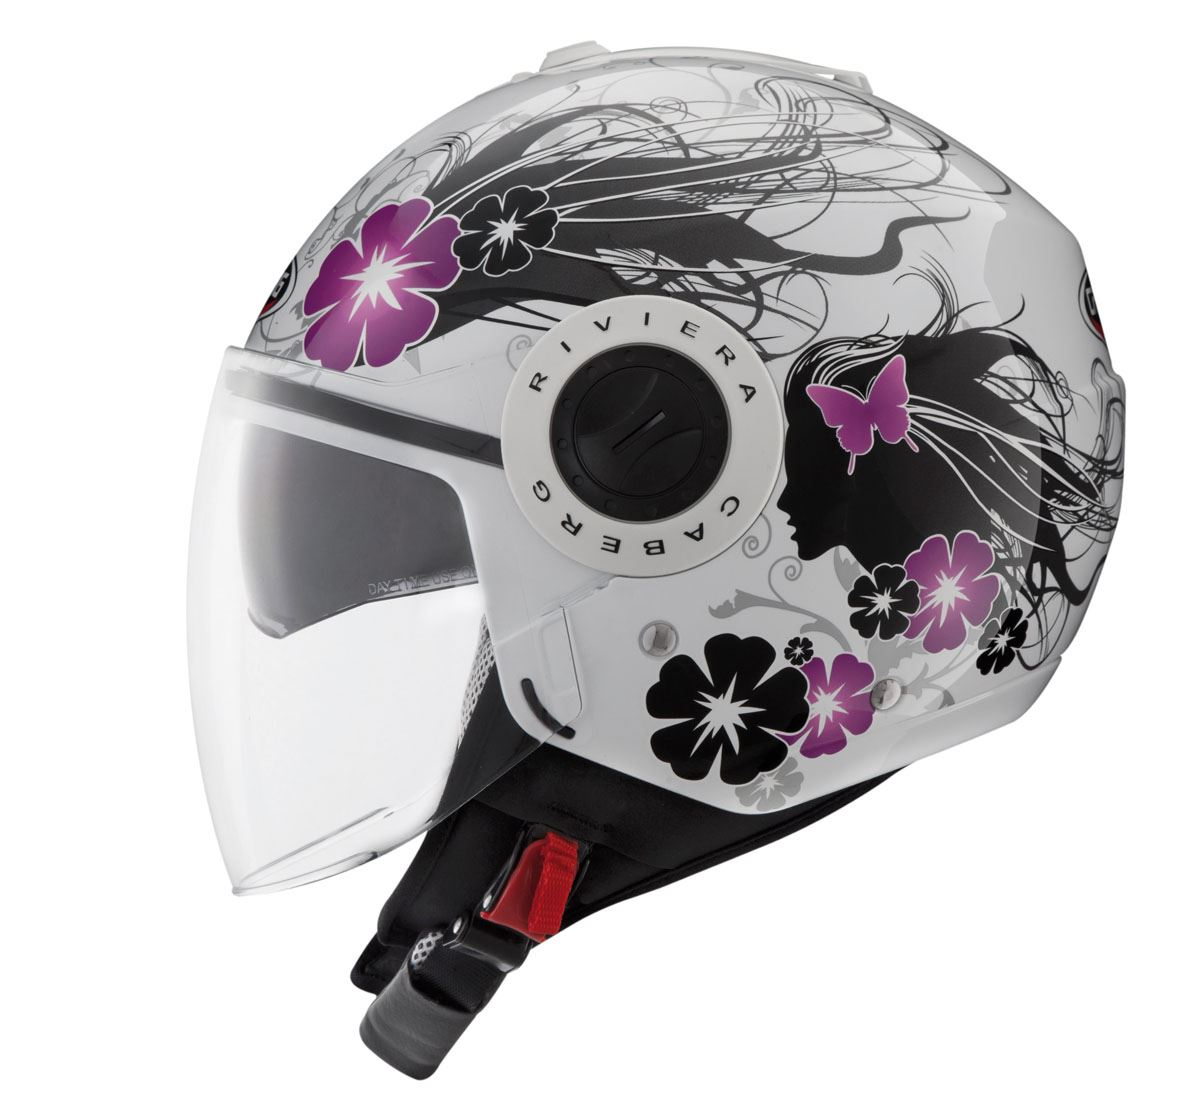 Caberg-Riviera-Open-Jet-Face-Motorcycle-Scooter-Ventilated-Helmet thumbnail 8